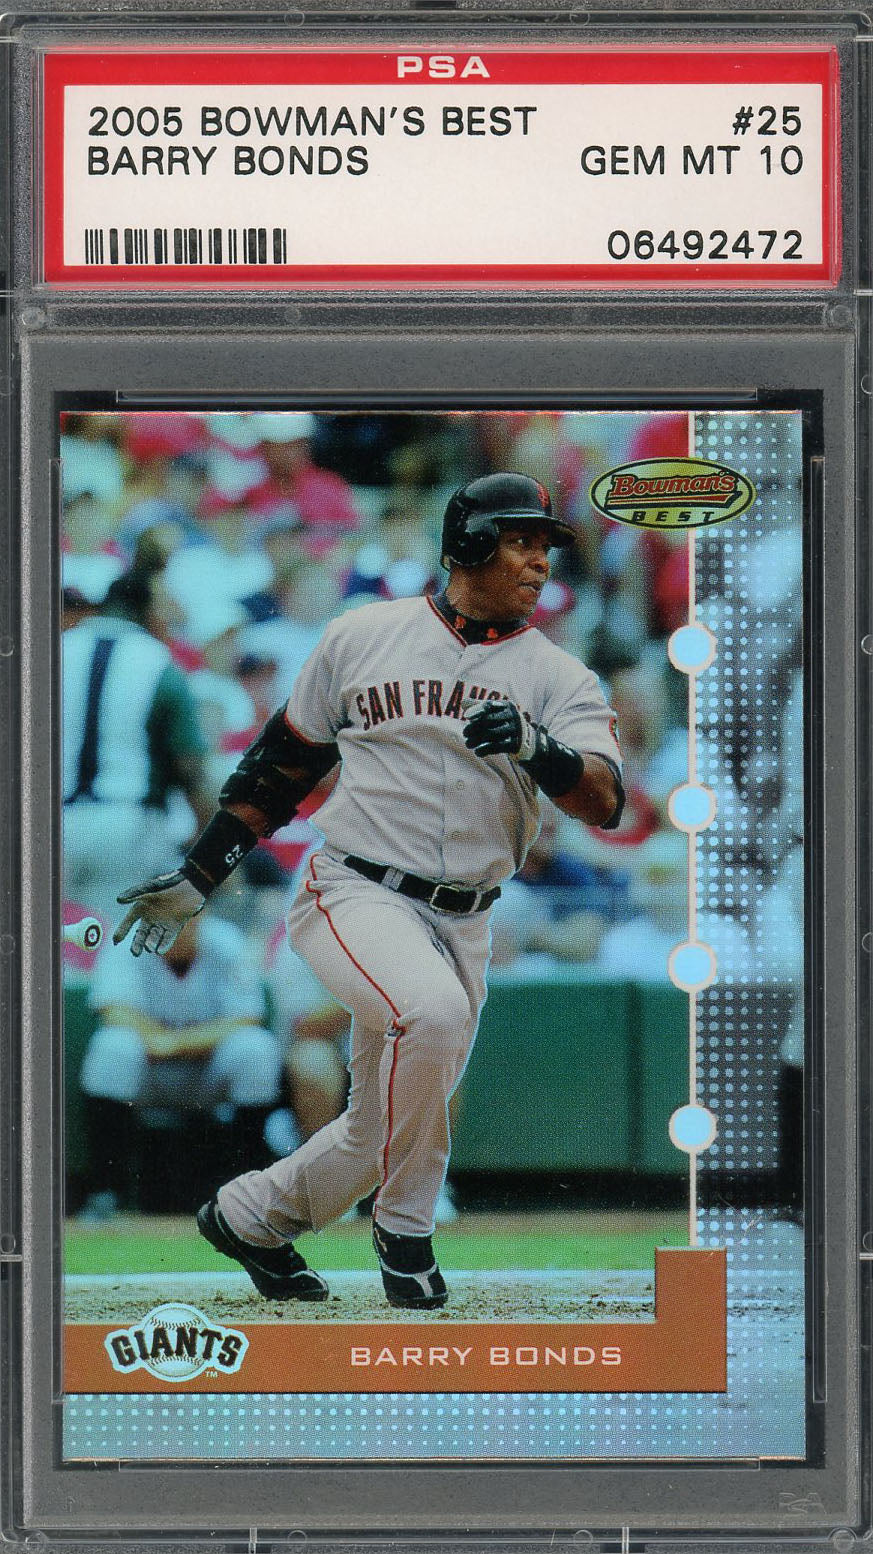 Barry Bonds San Francisco Giants 2005 Bowmans Best Baseball Card #25 Graded PSA 10 GEM MINT-Powers Sports Memorabilia